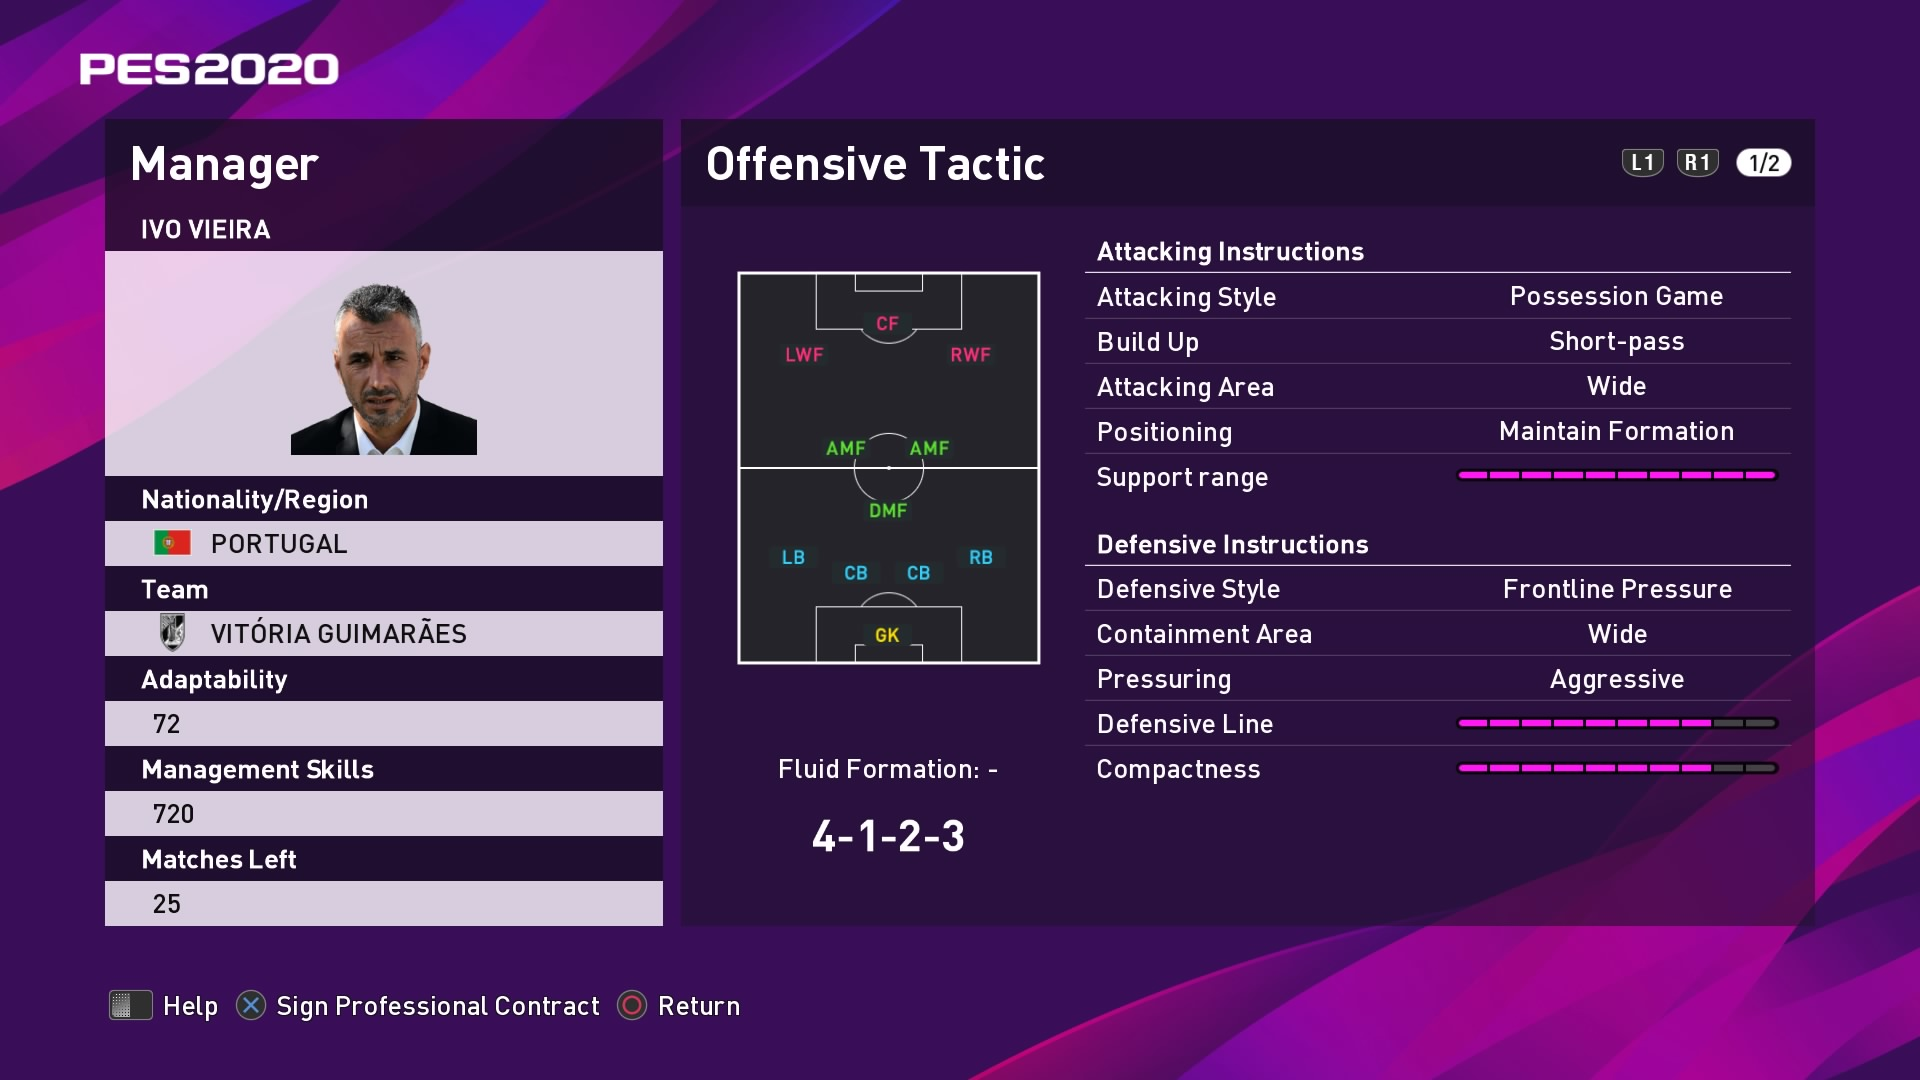 Ivo Vieira Offensive Tactic in PES 2020 myClub